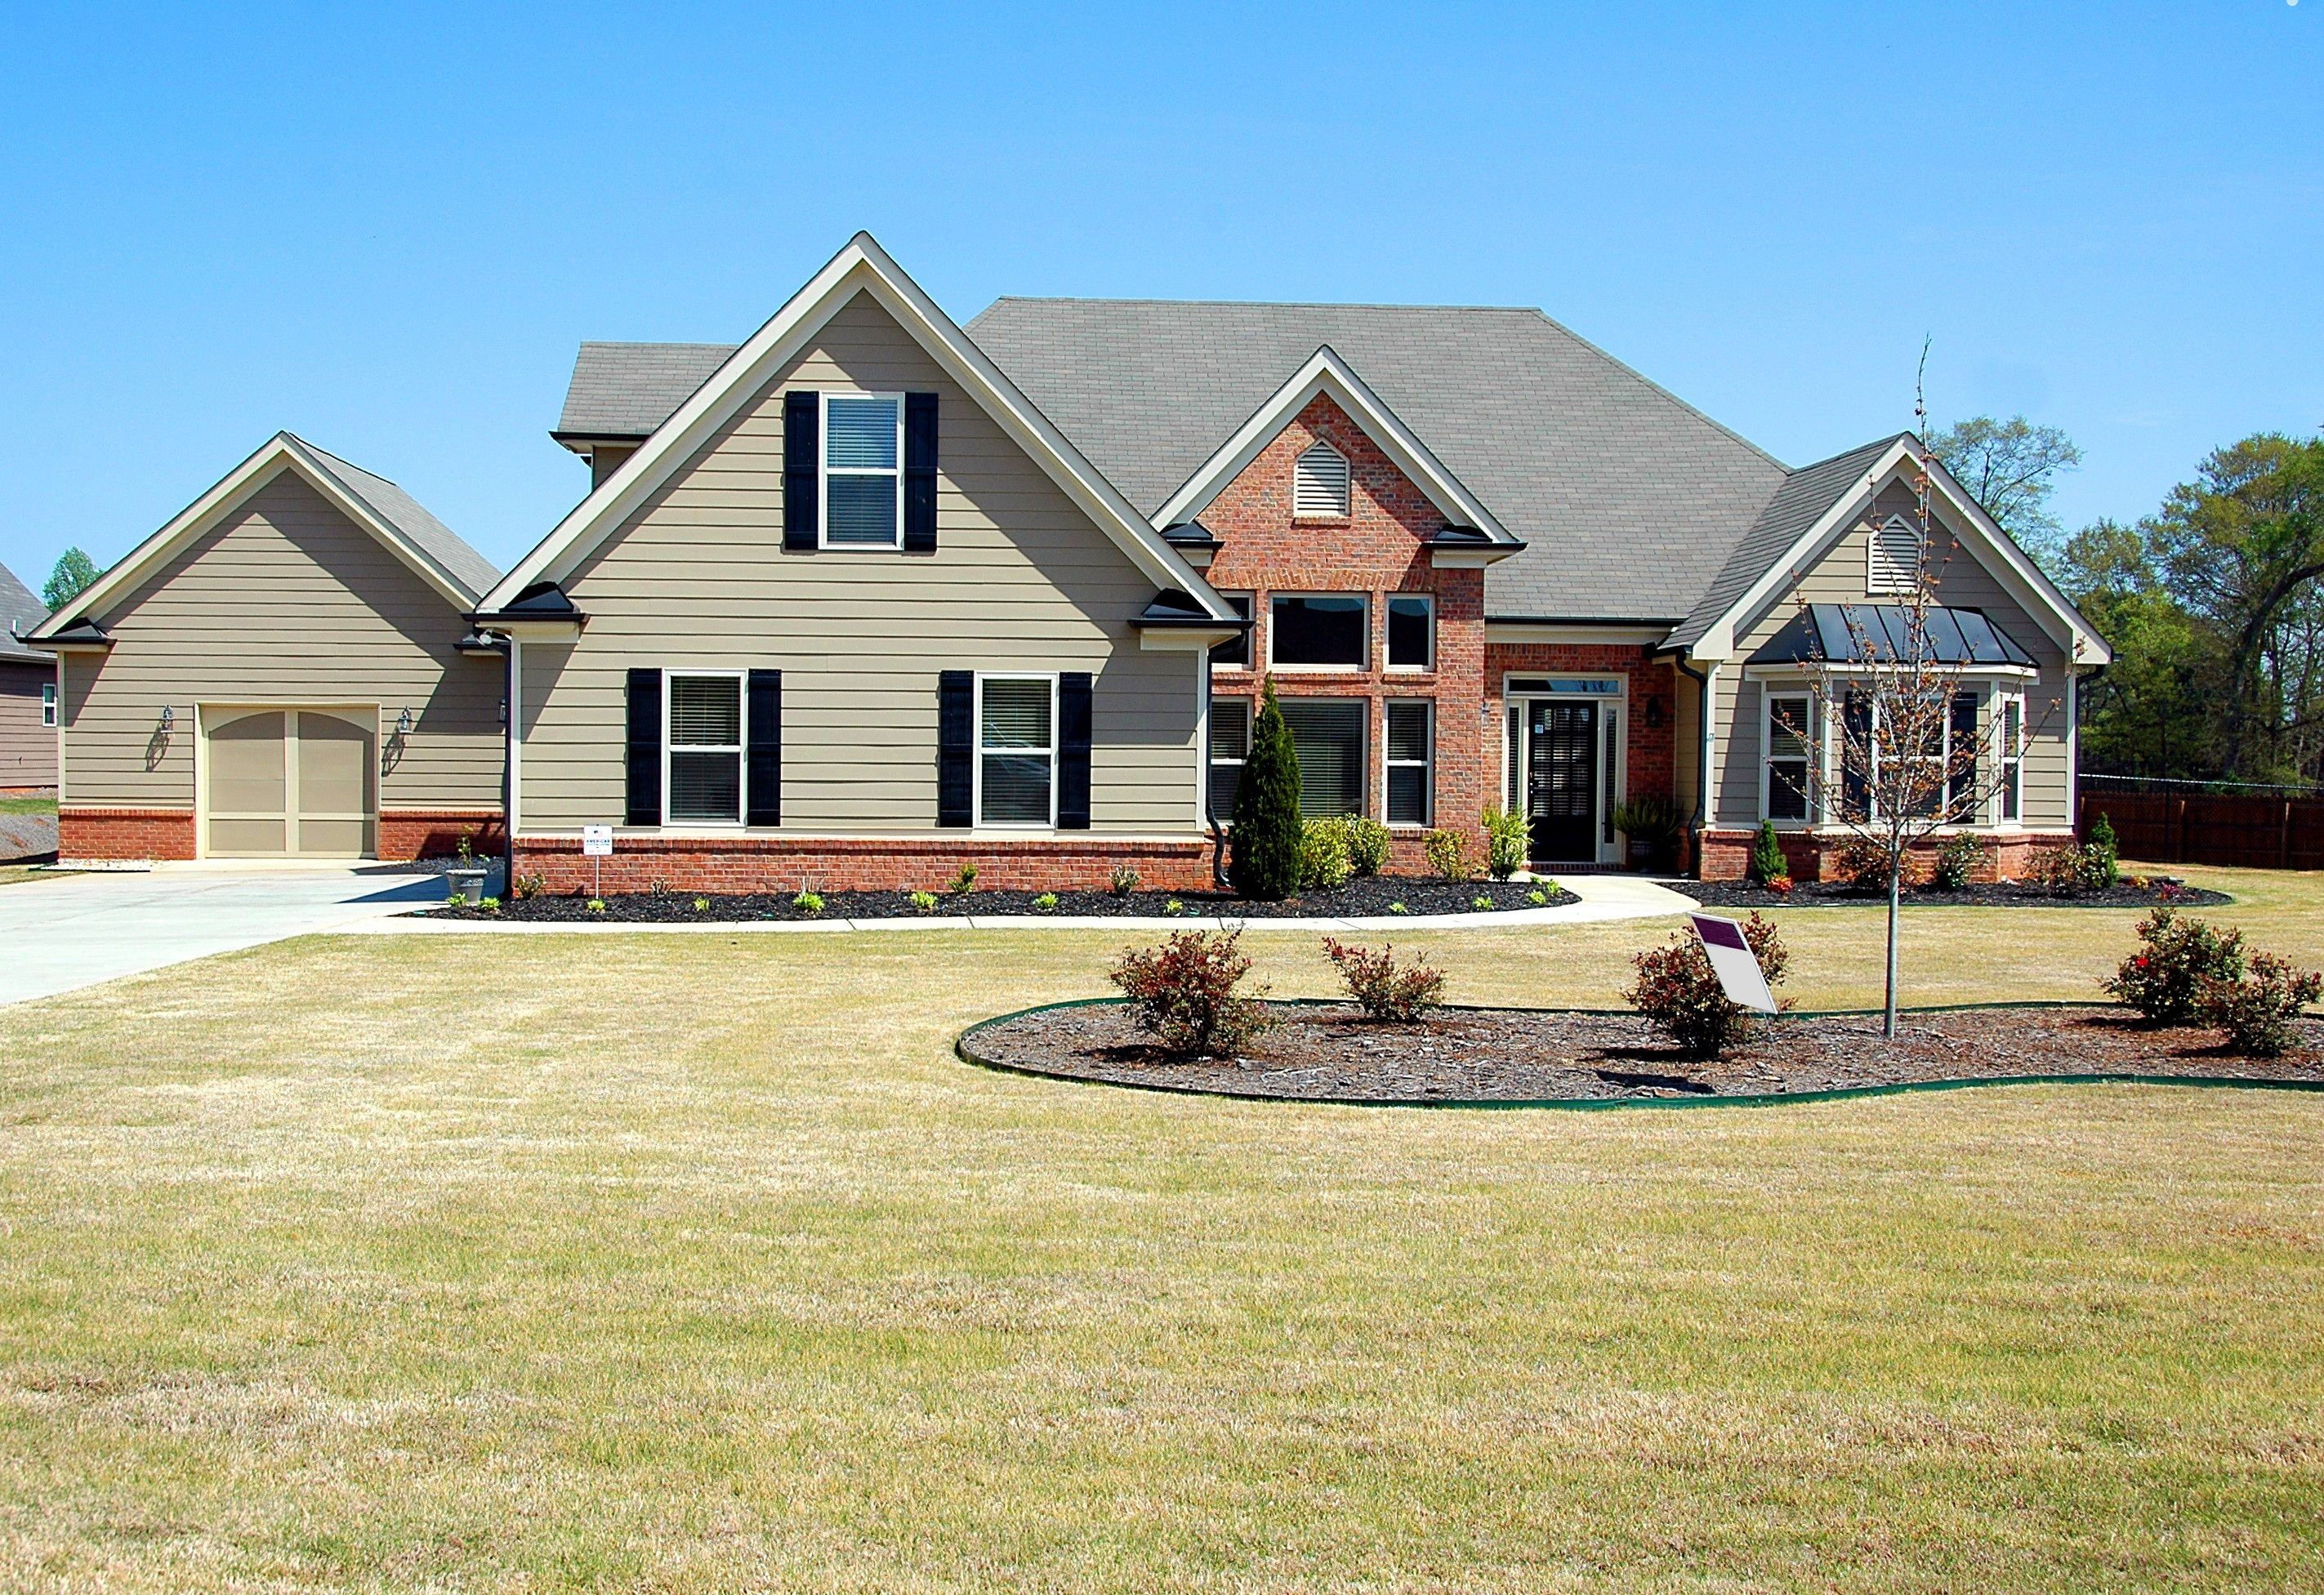 Recently Sold Homes In Soddy Daisy Home mortgage, Home